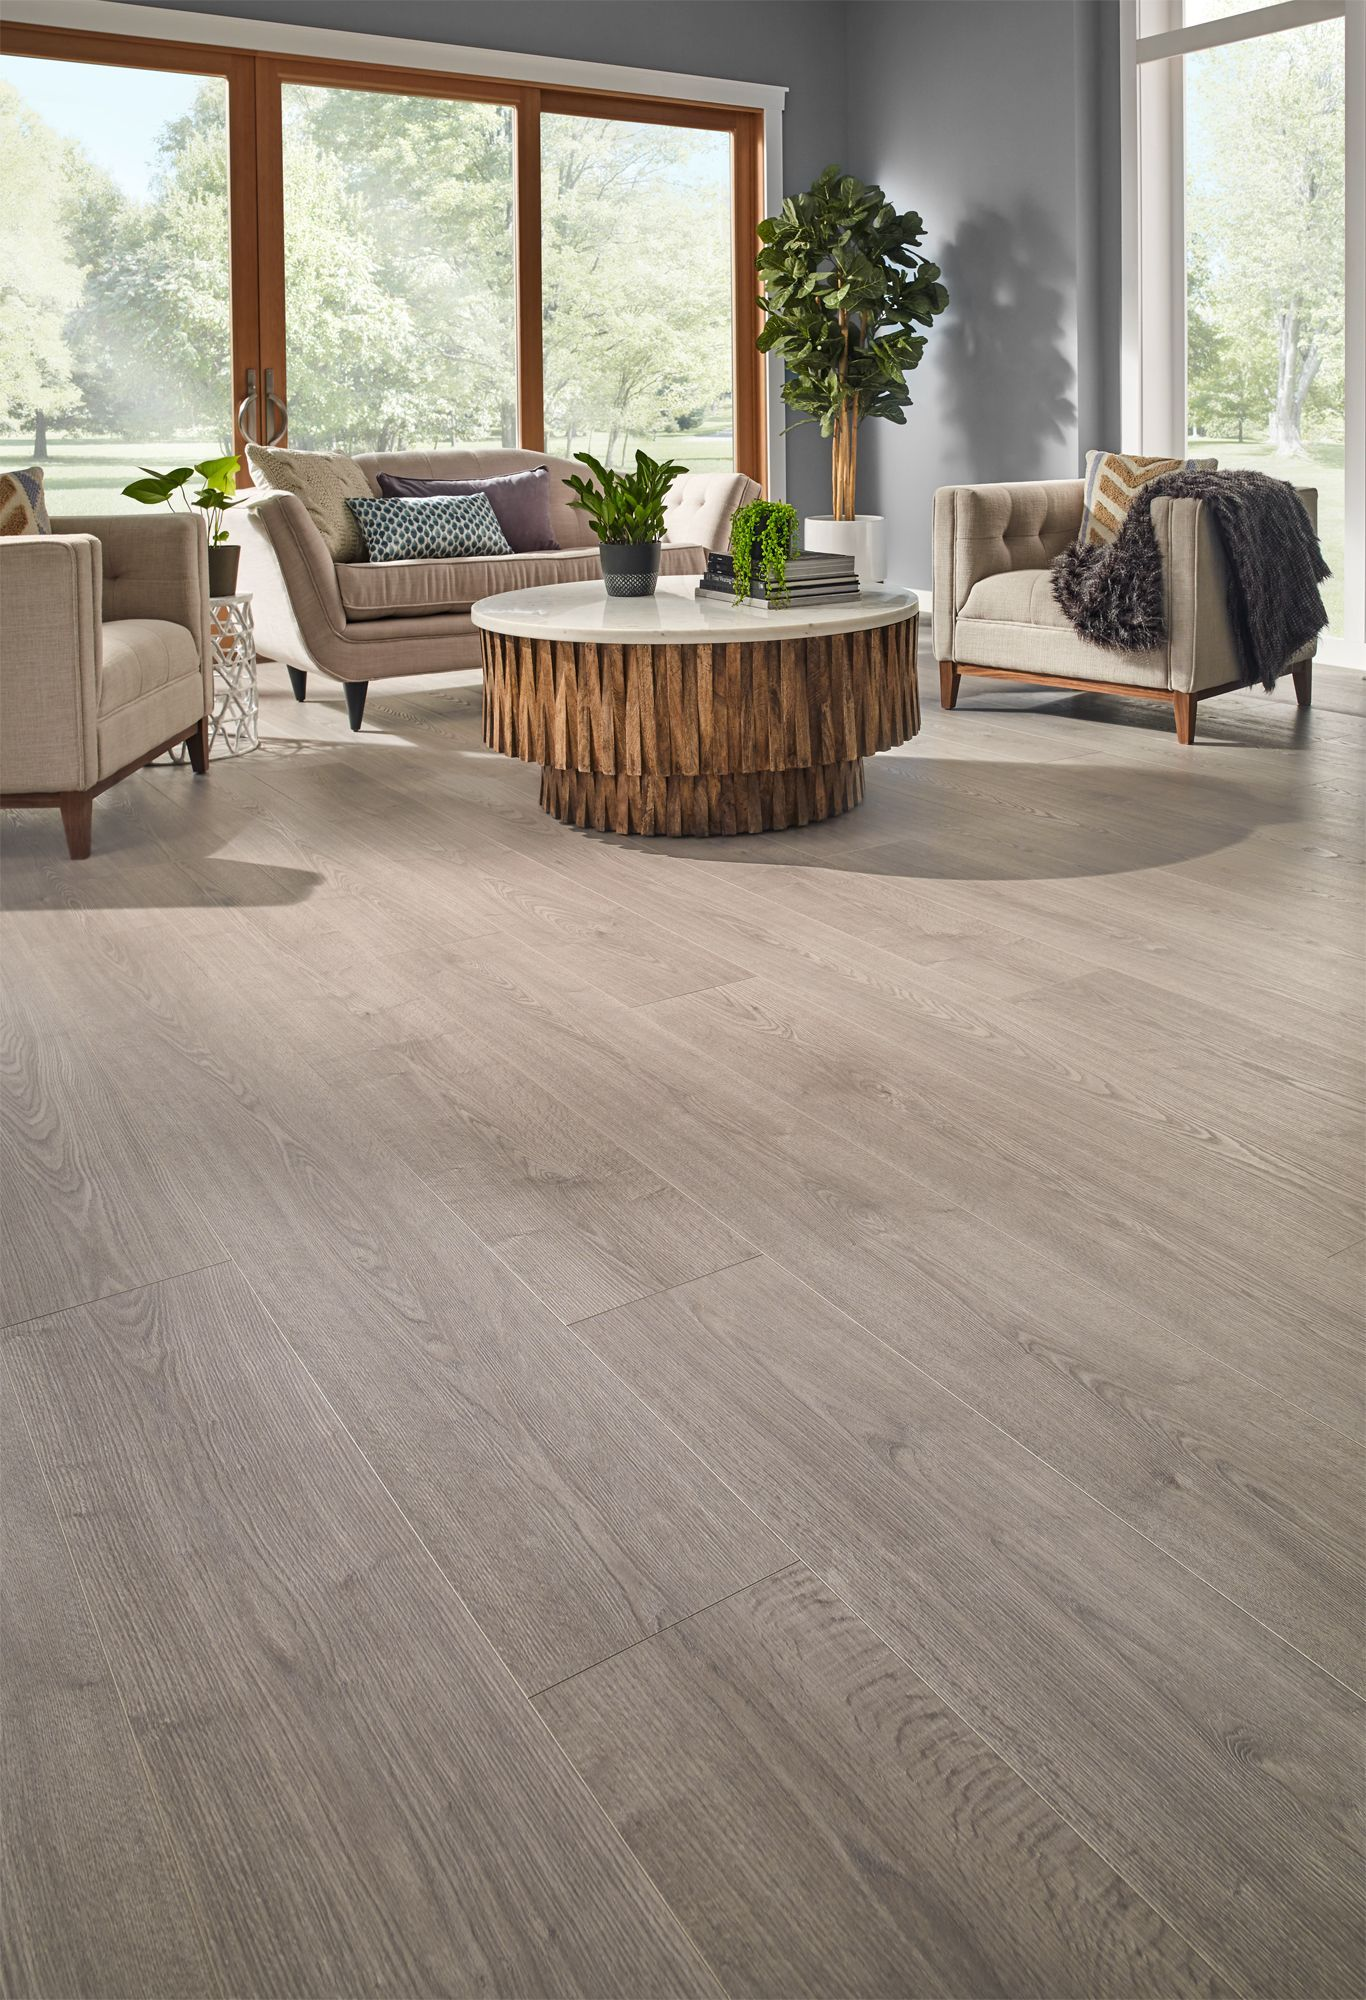 Highly Water Resistant Misty Morning Oak Is The Perfect Laminate Floor For Those Waterproof Laminate Flooring Vinyl Laminate Flooring Laminate Flooring Colors